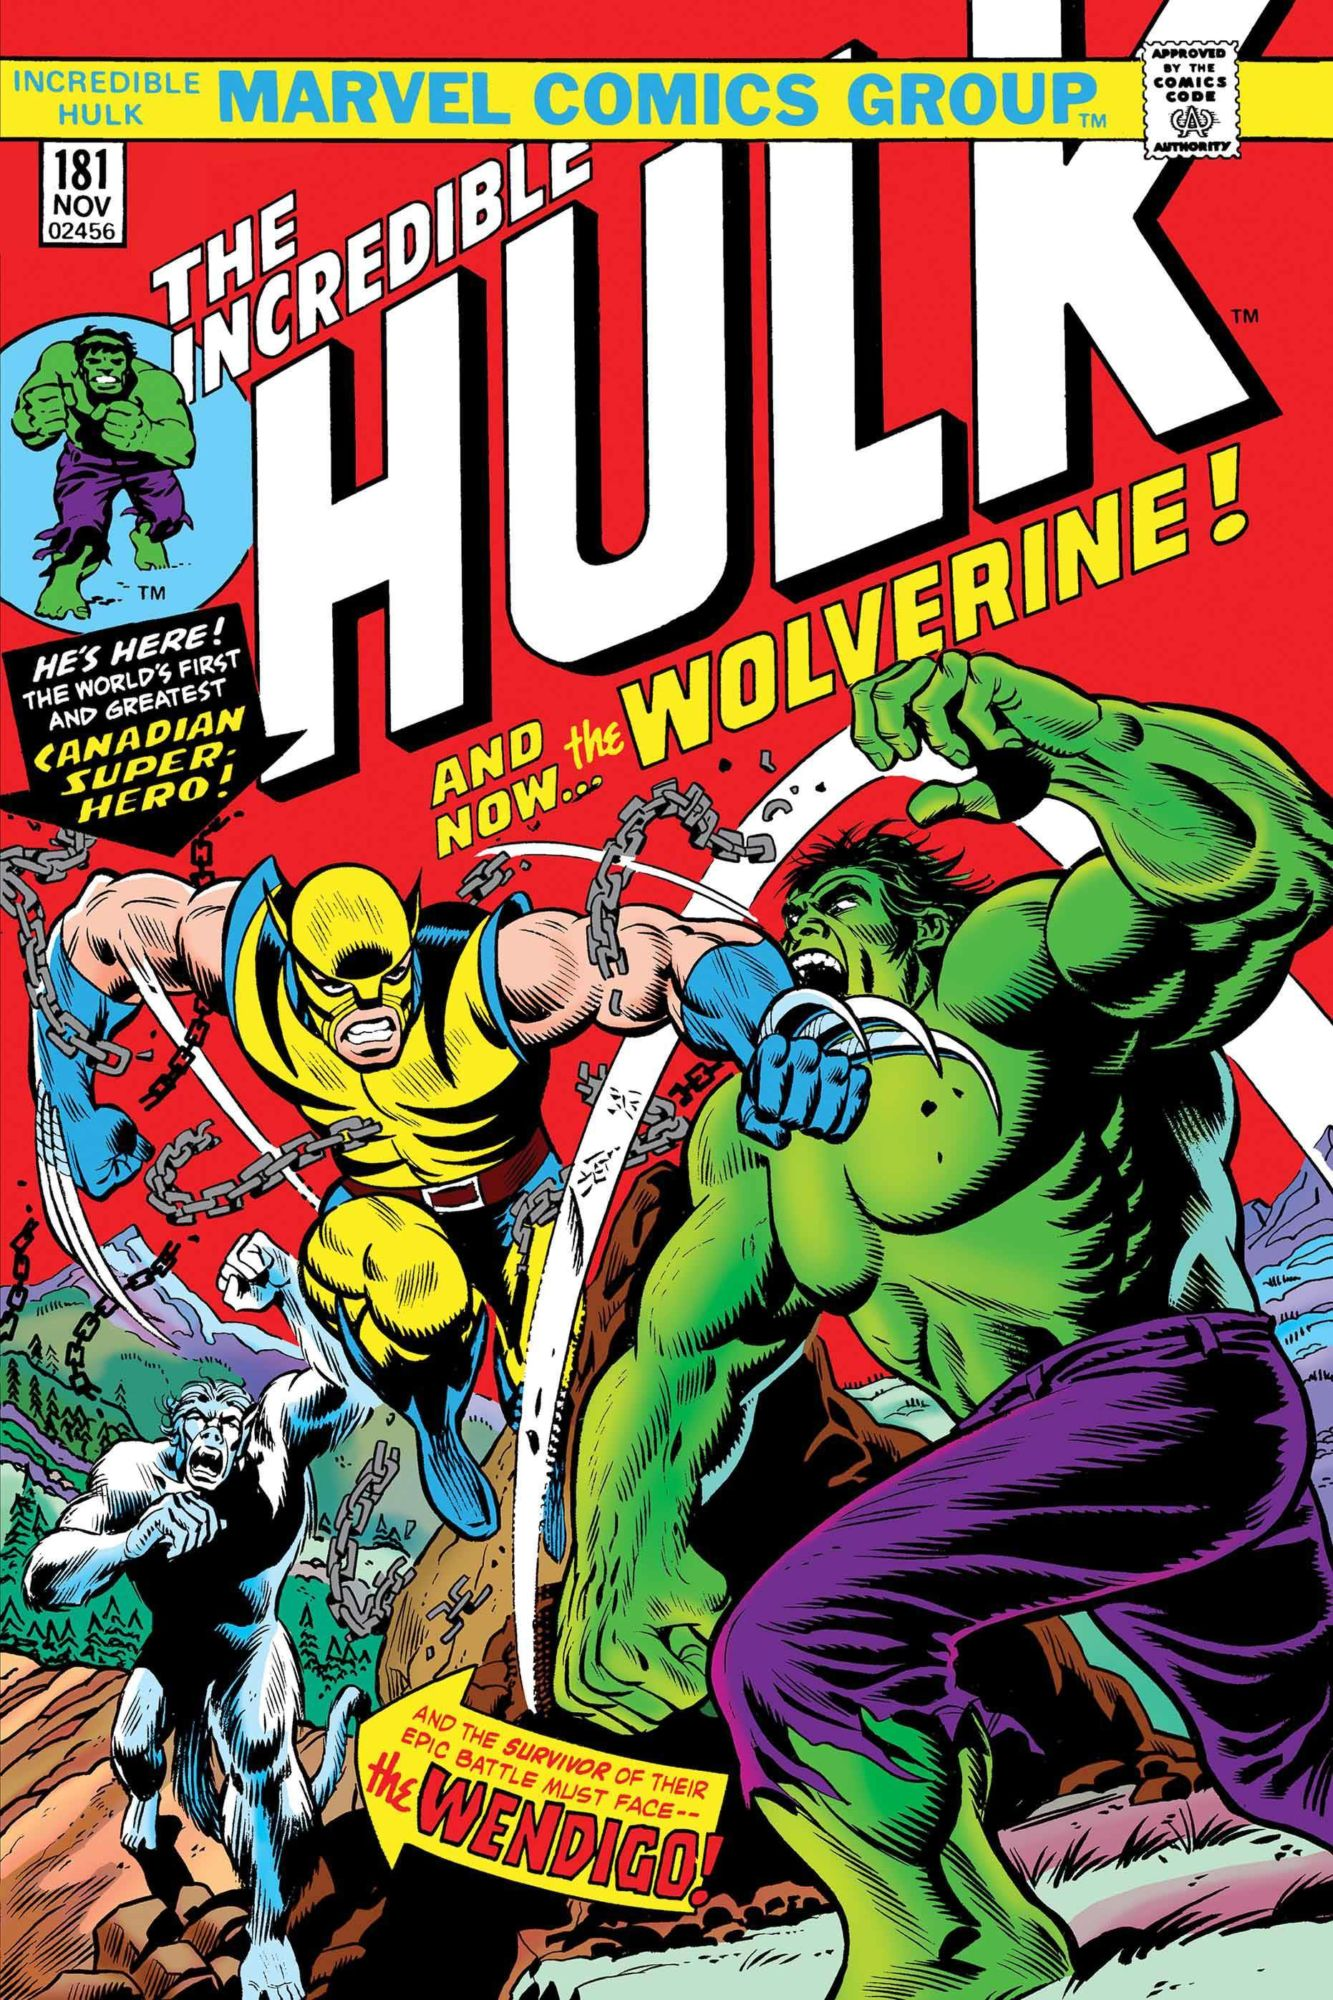 Marvel To Publish New Facsimiles Of Their Facsimile Editions